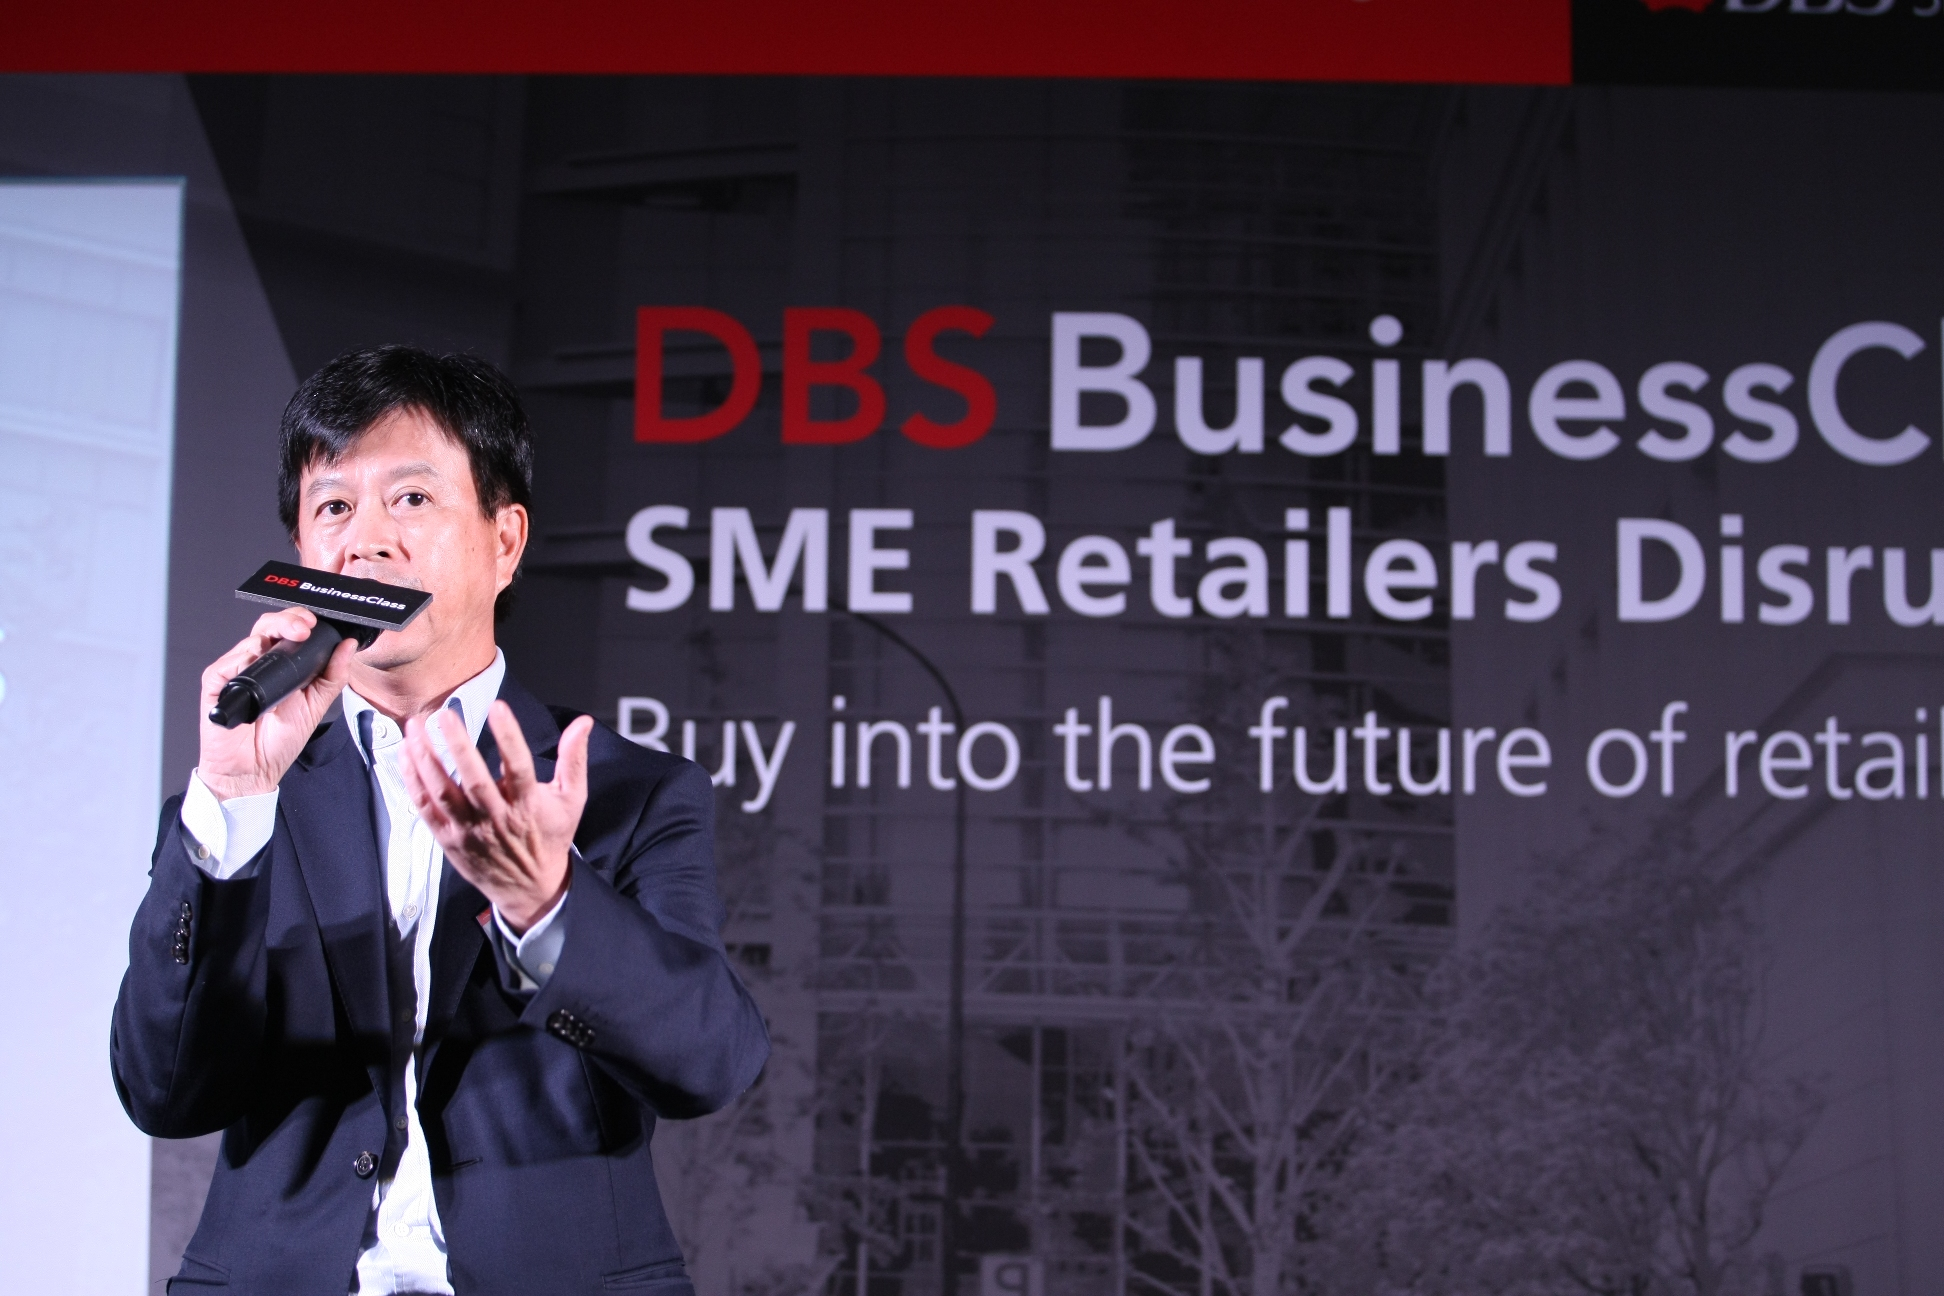 Alex Cheung, Managing Director, Head of Institutional Banking Group, Hong Kong, DBS Bank (Hong Kong) Limited, said in his speech that DBS BusinessClass is designed to help SMEs and entrepreneurs grow their business network and equip themselves with greater market insights.